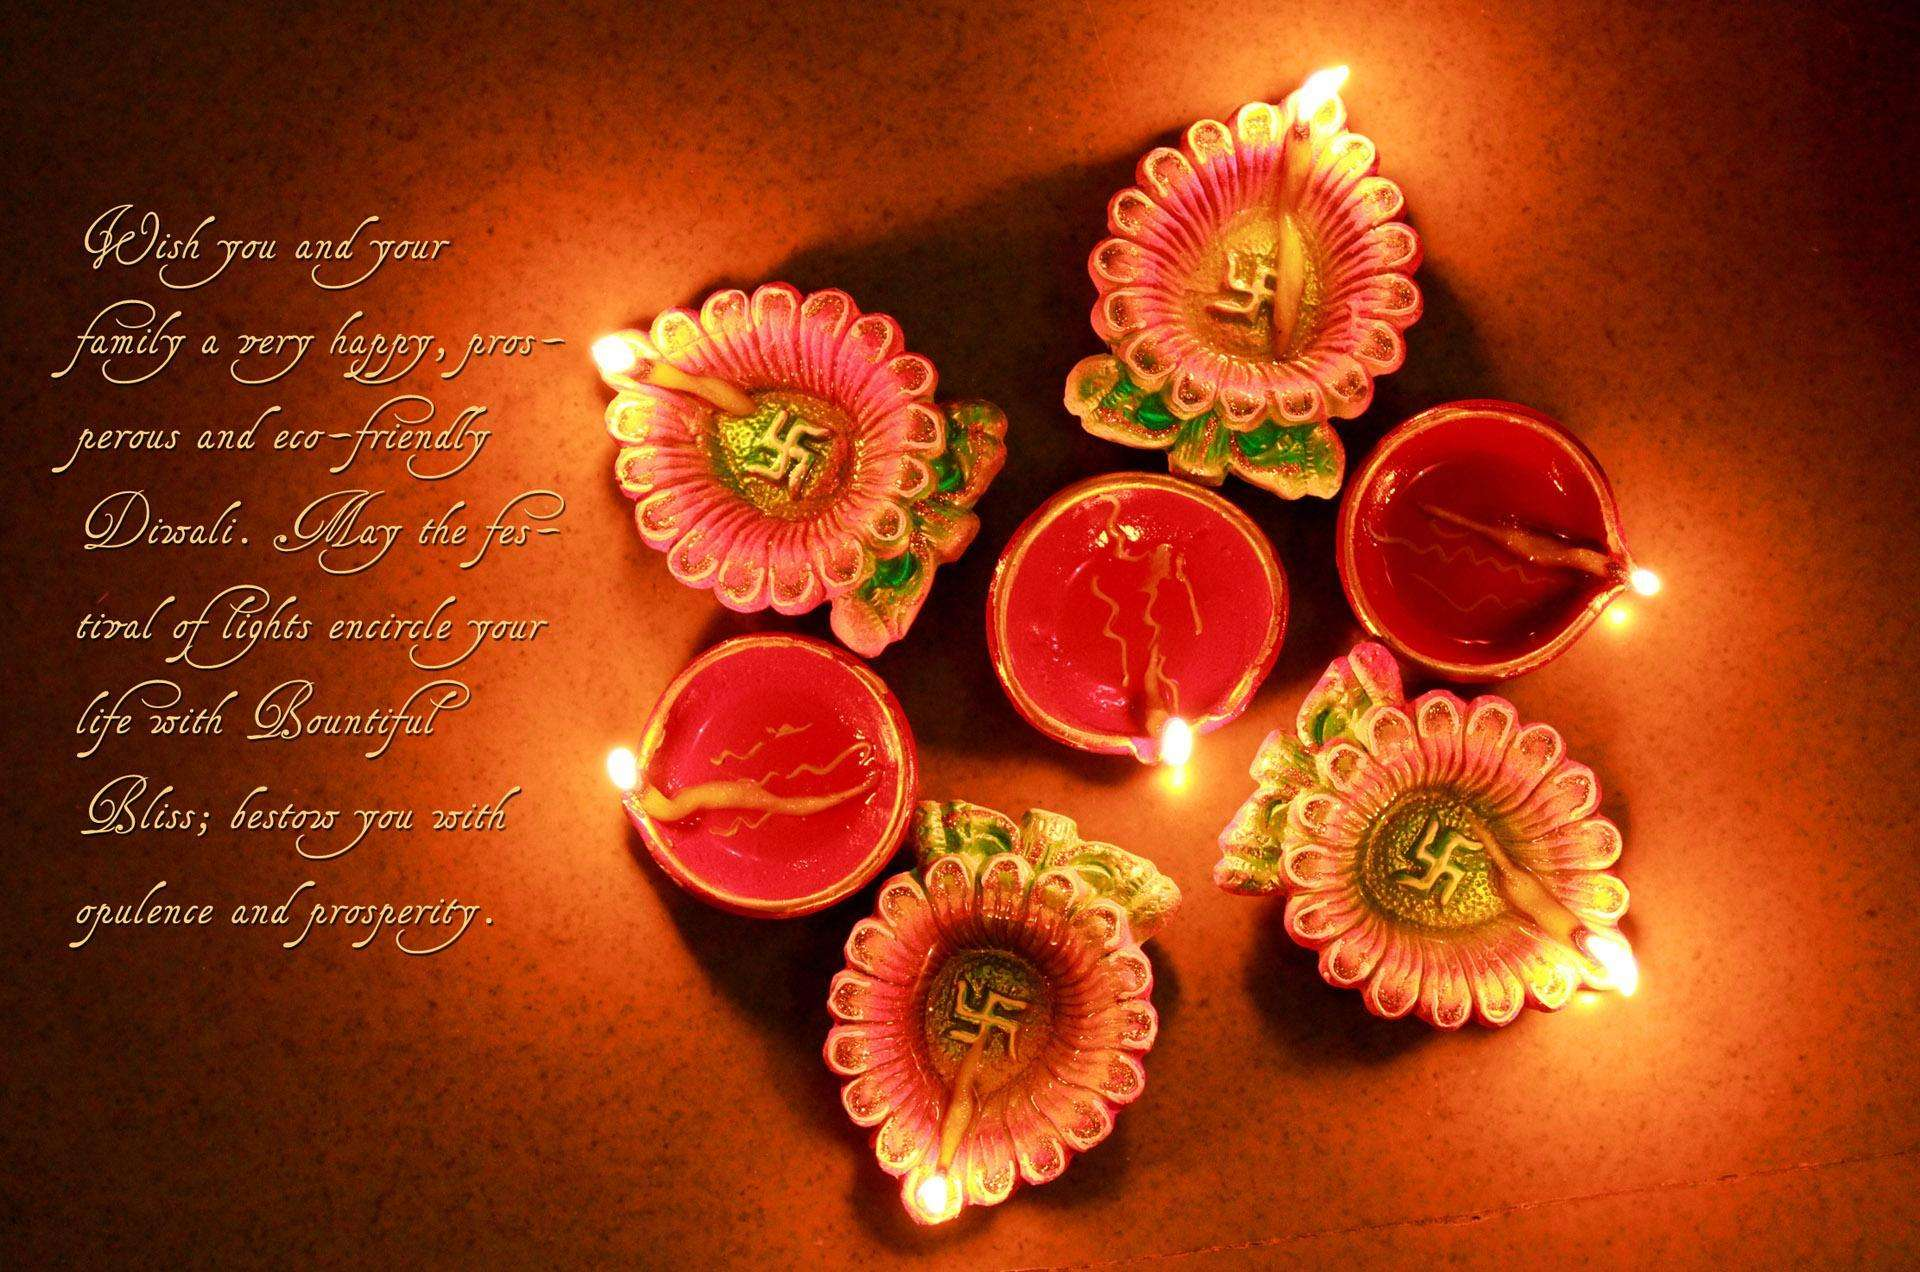 Wallpaper download diwali - Download Diwali Greeting Card